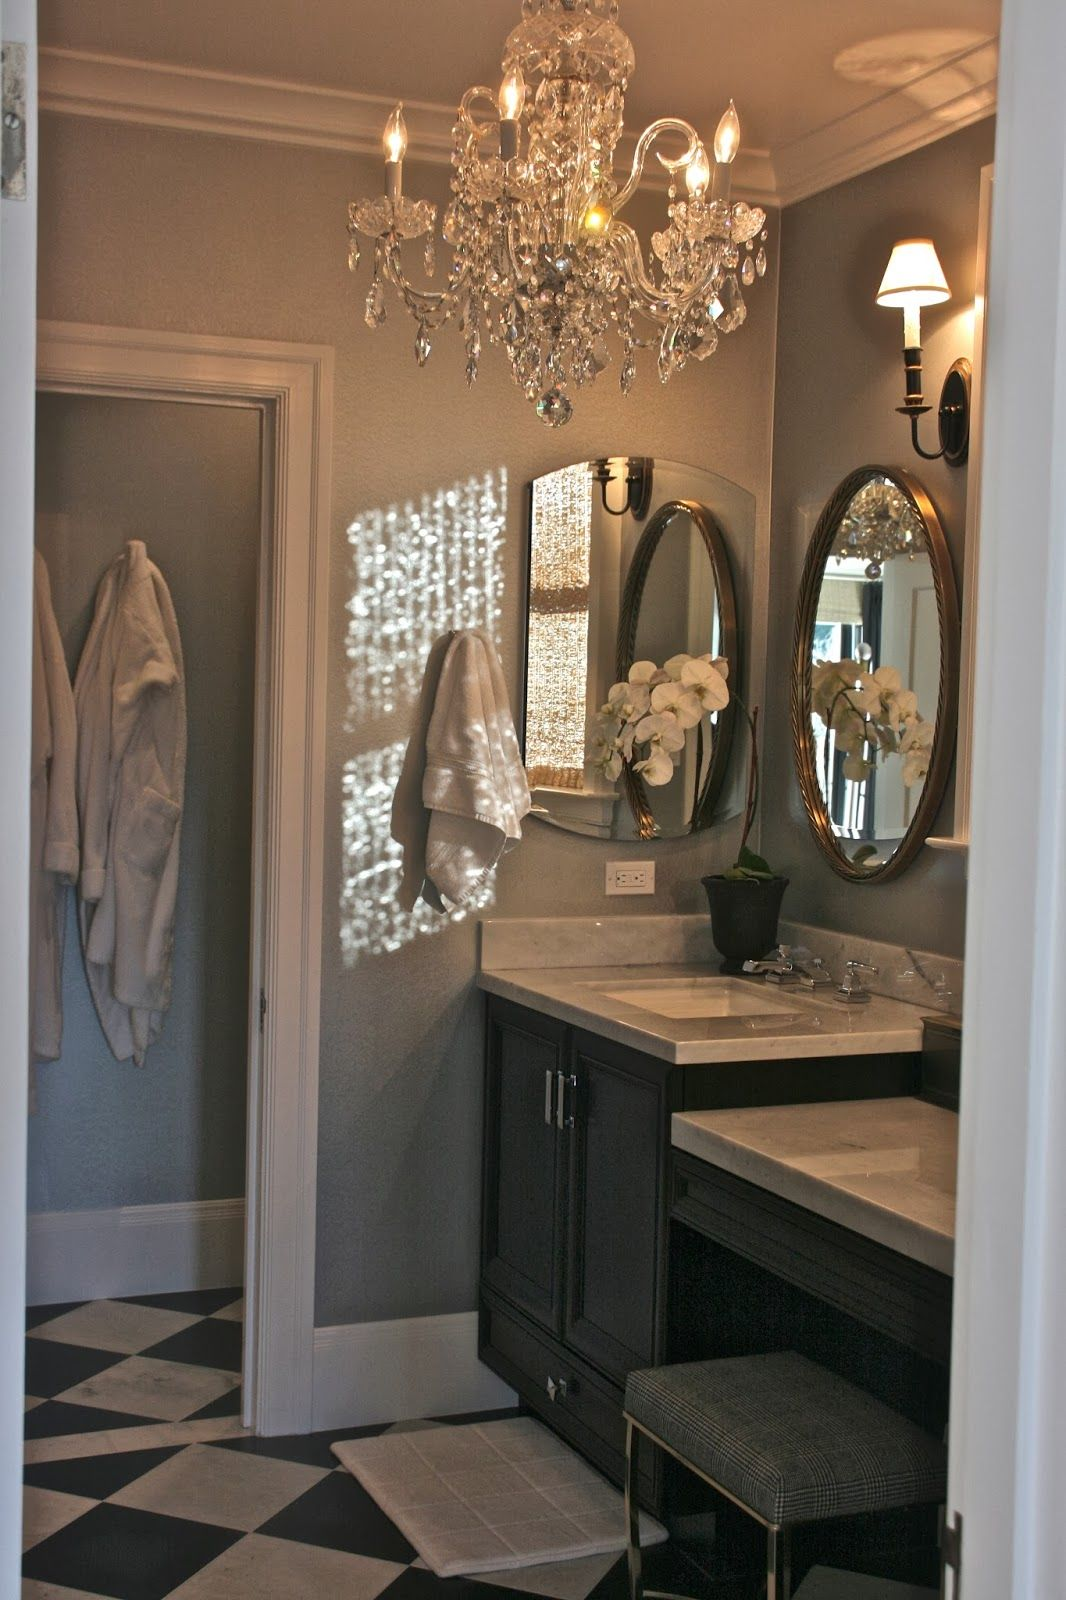 Bathroom Chandelier Lighting Ideas elegant retreat. . .oval mirror framed in cherry, silvery blue on